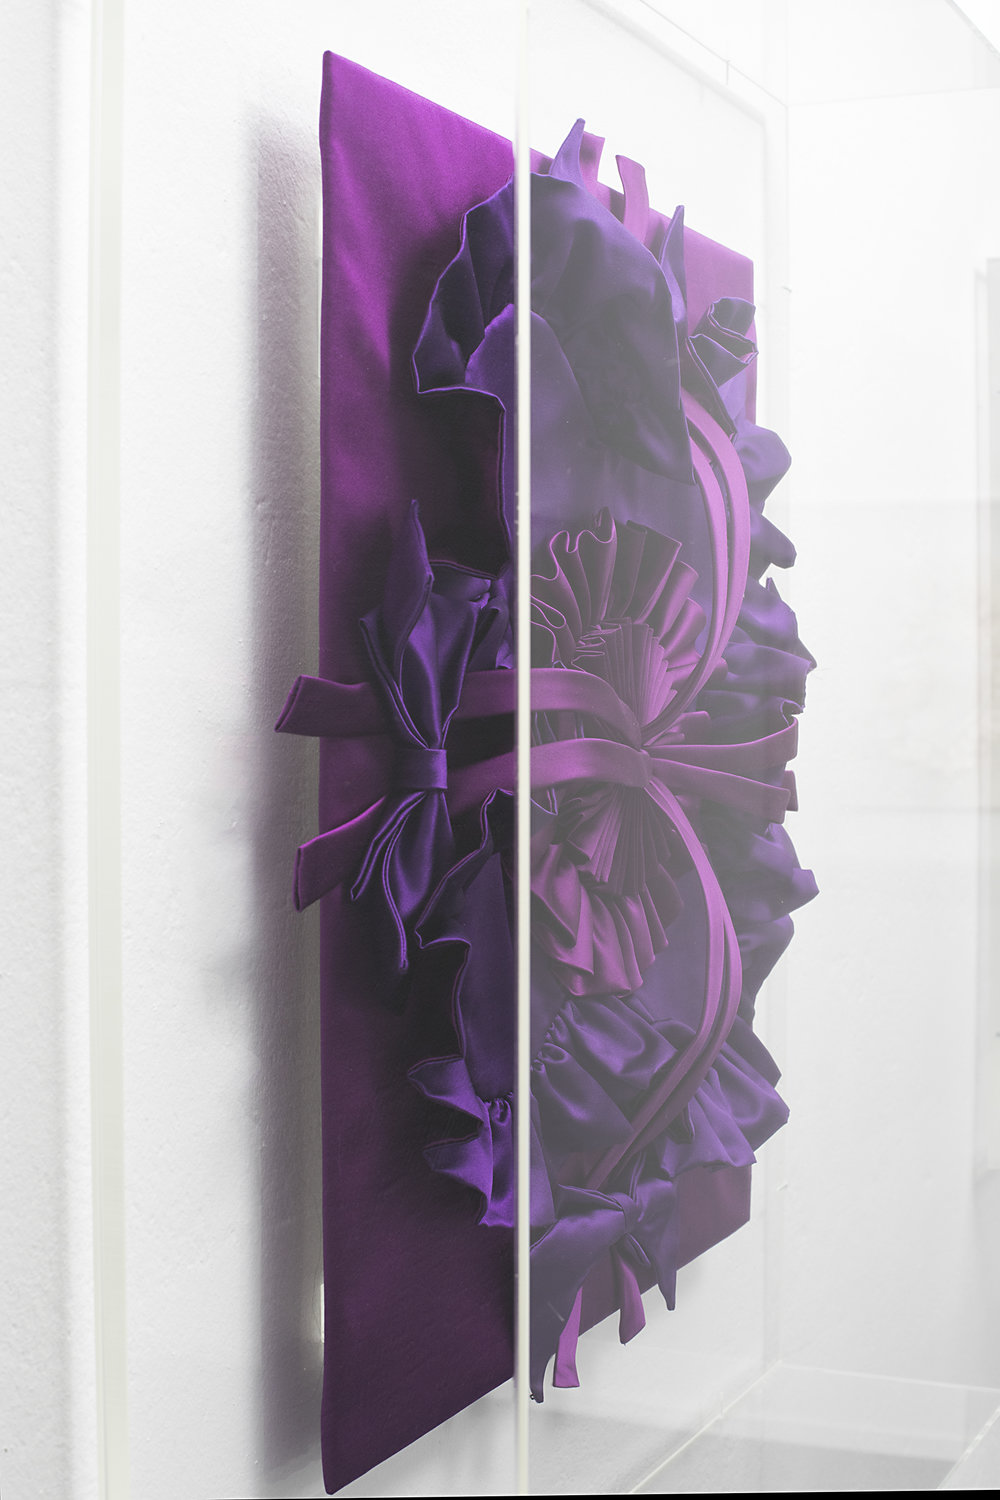 Detail of Gabriella Loeb,  quadratura,  silk satin, plexiglass 61 x 66 x 14 cm